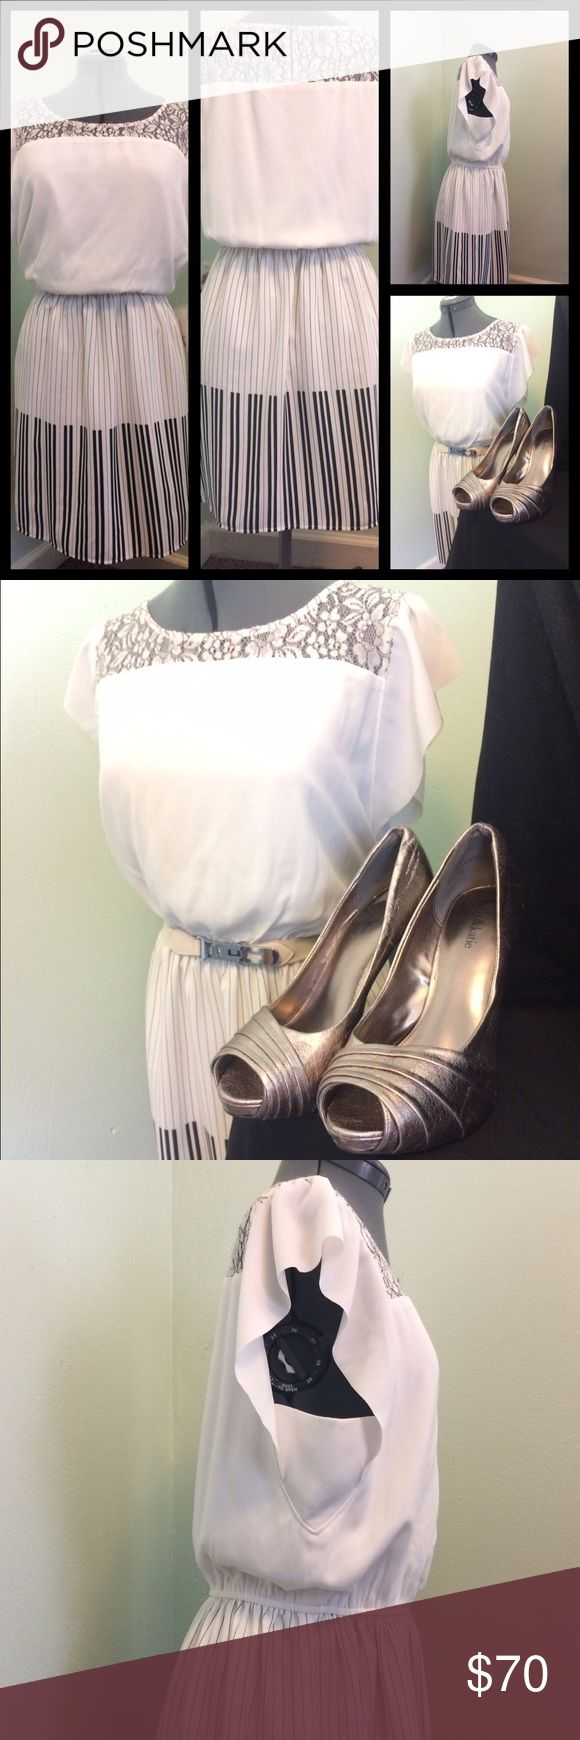 NWT Black and white lacey trim ANY occasion dress Very feminine, fully lined dress with elasticized waist flatters the body. Pretty detailing around the neckline, back and sleeves. Can be styled for any occasion. Shoes and belt also offered for sale. Madison Jules Dresses Mini